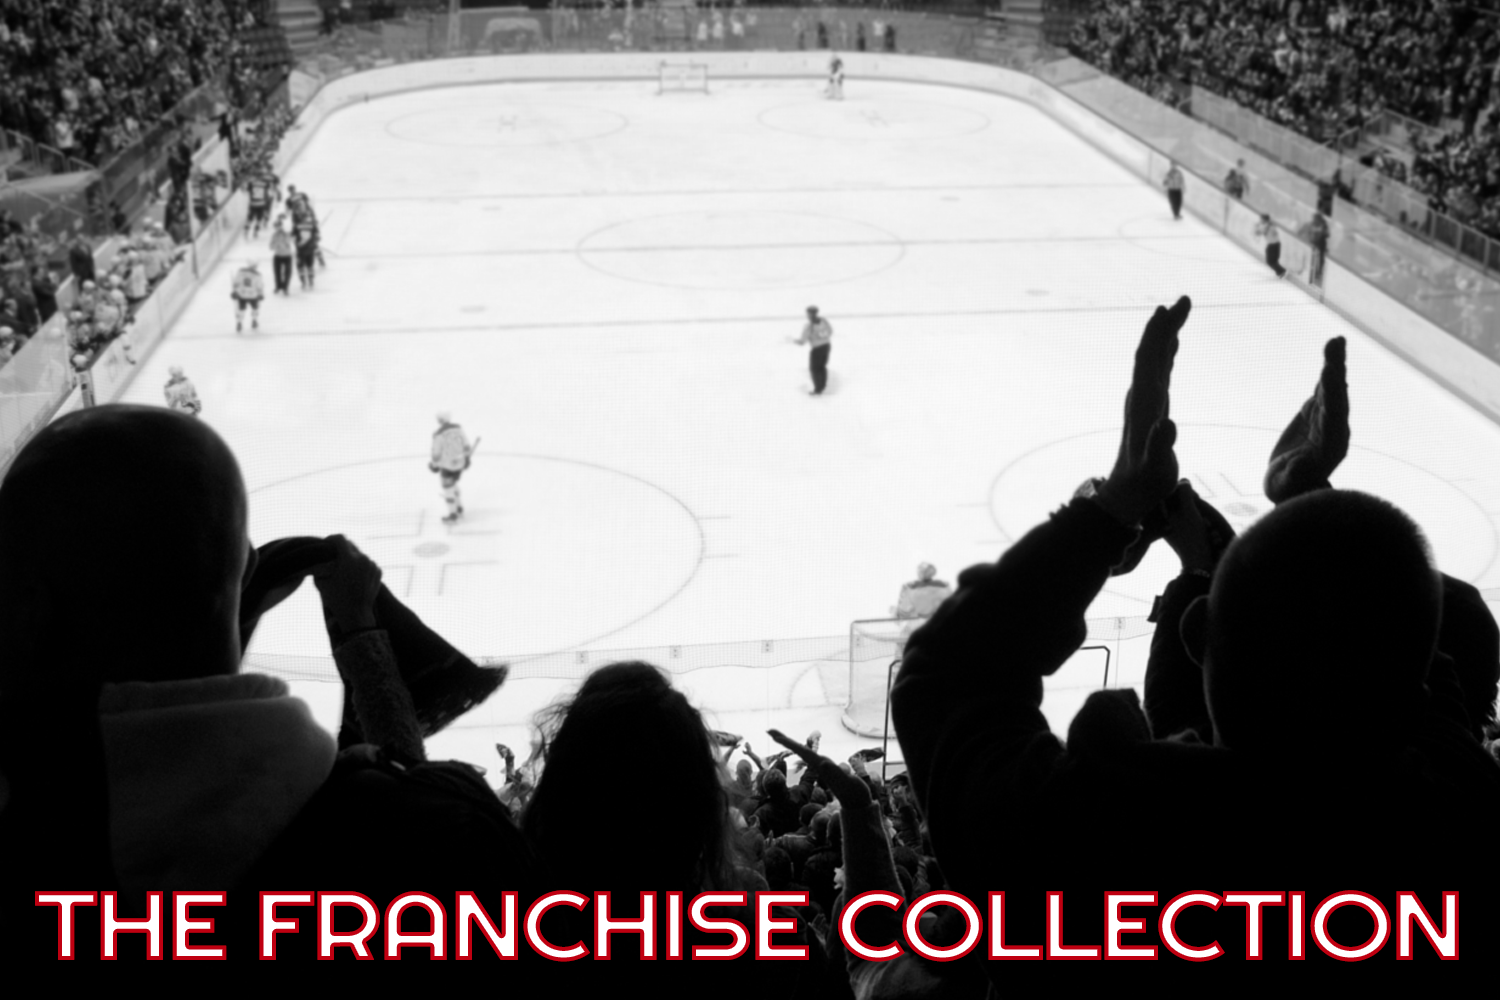 Franchise Collection